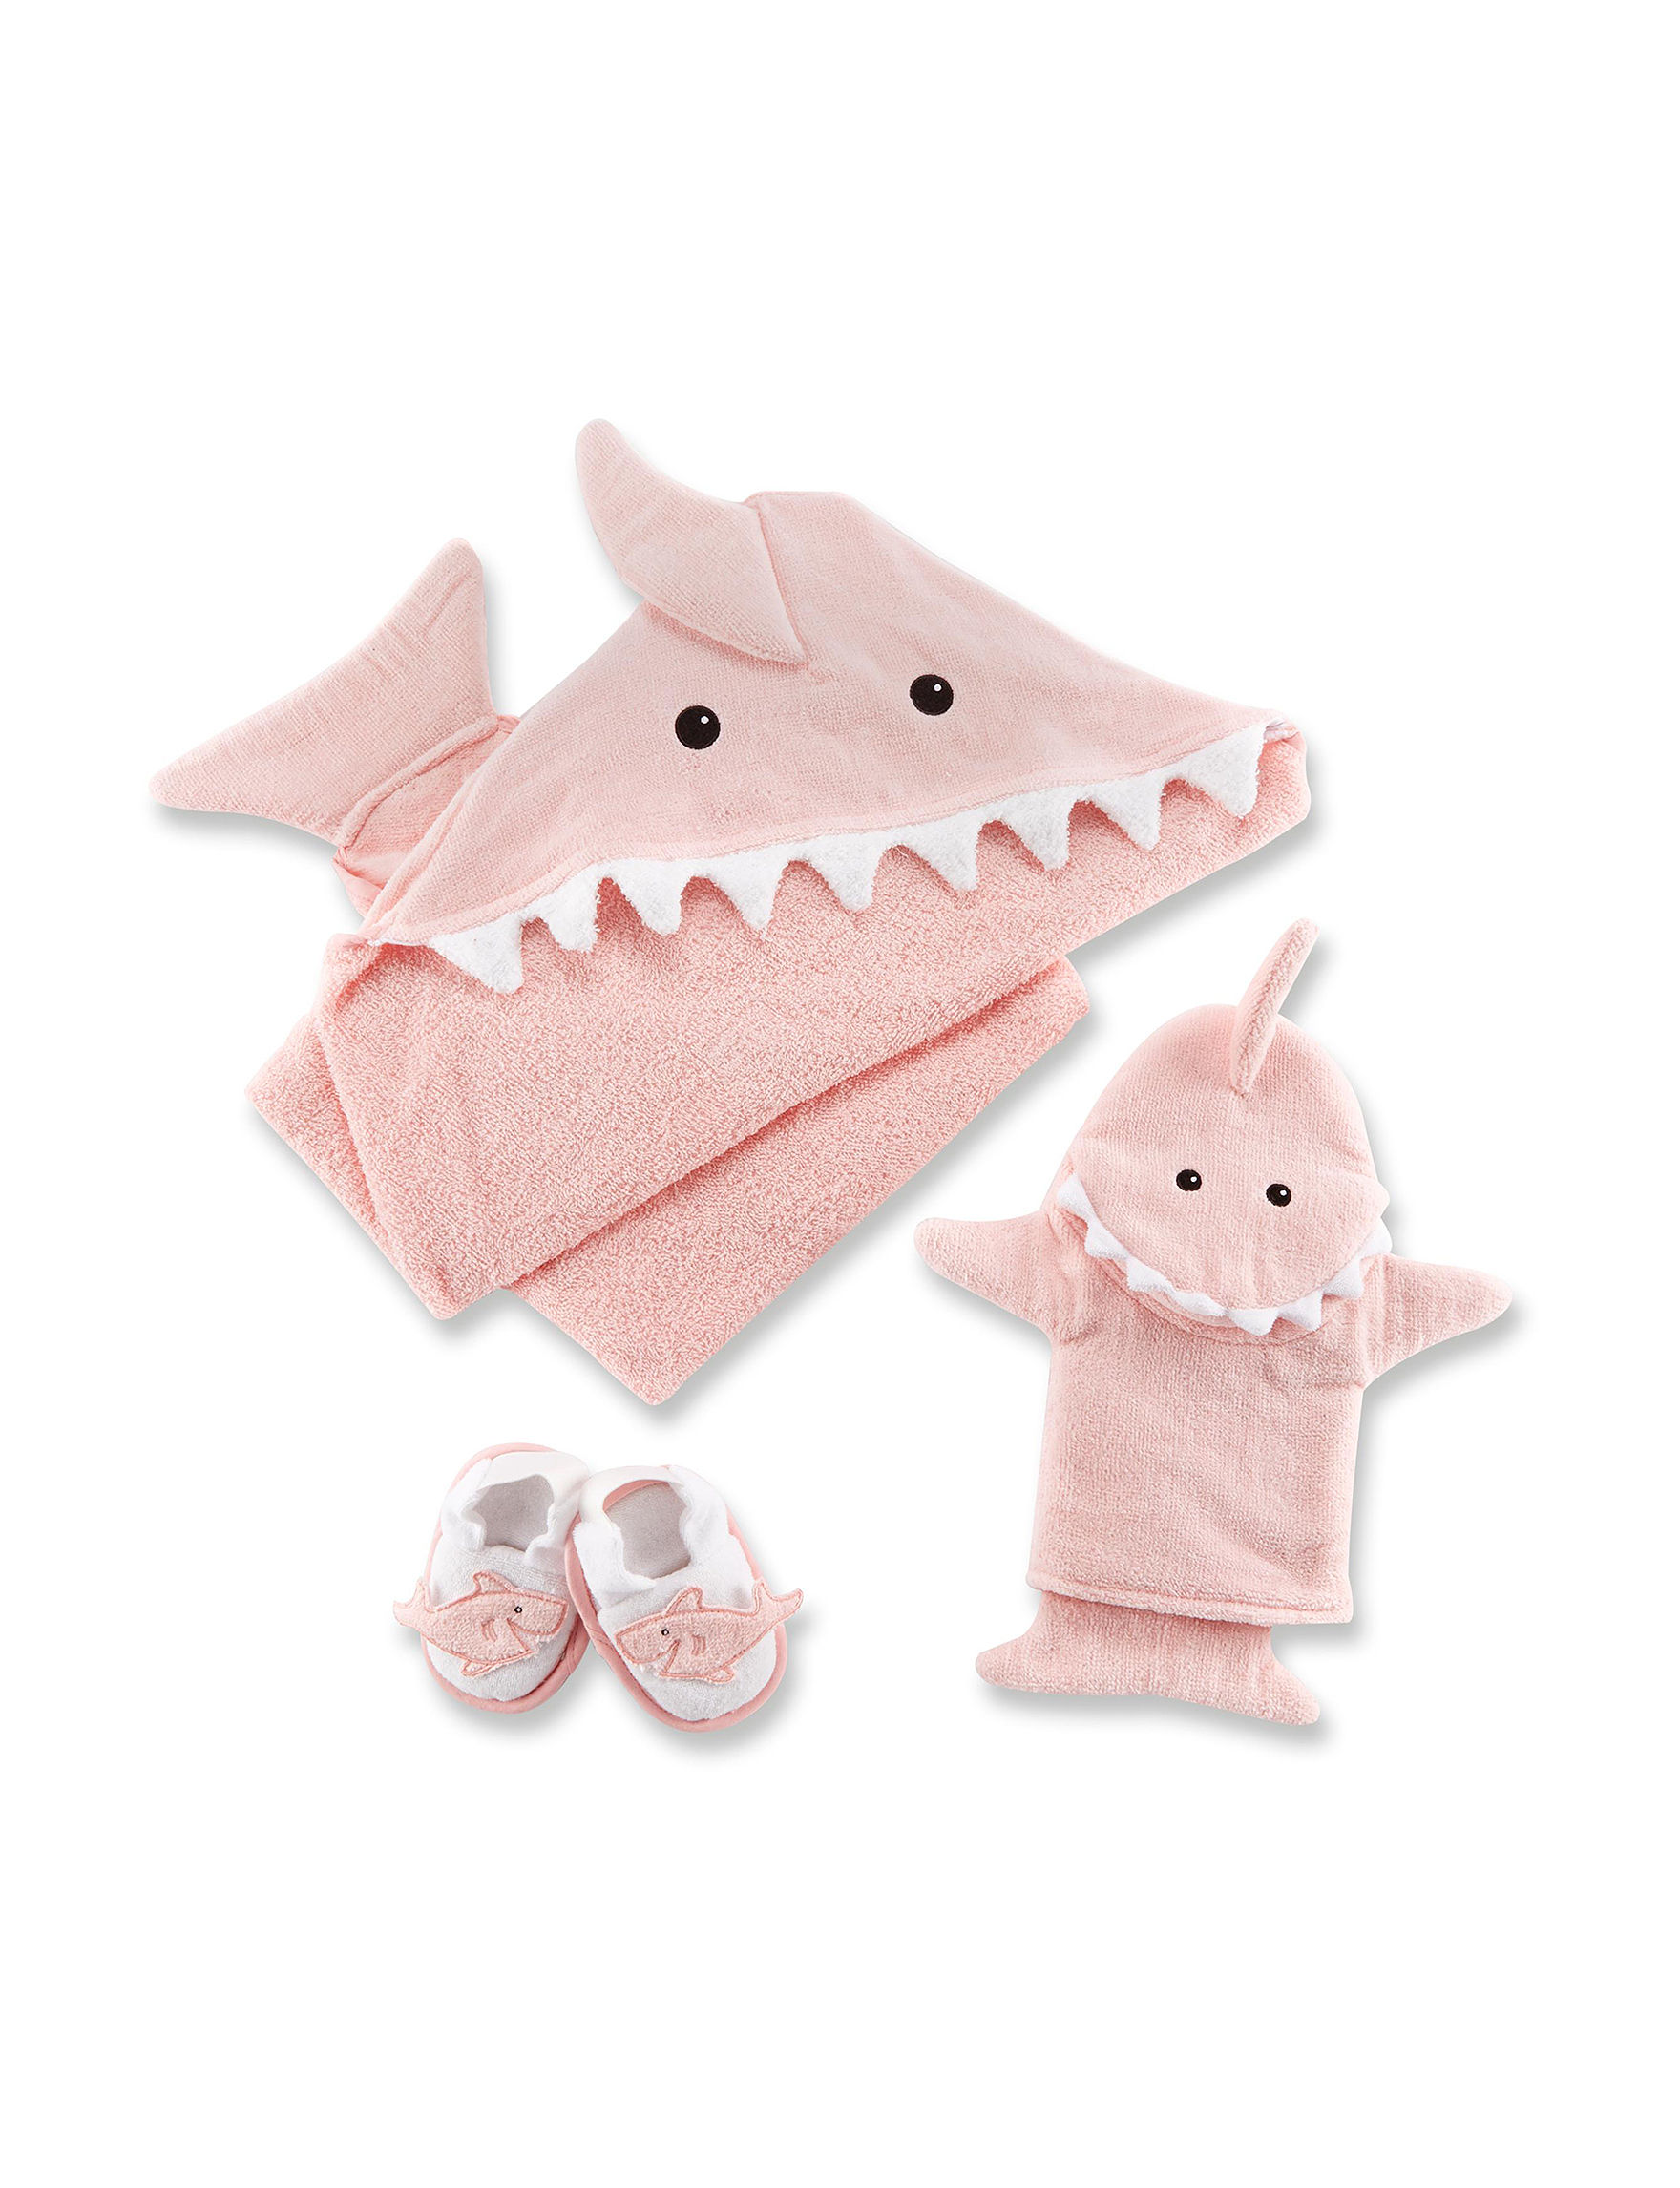 Baby Aspen Pink / White Towels